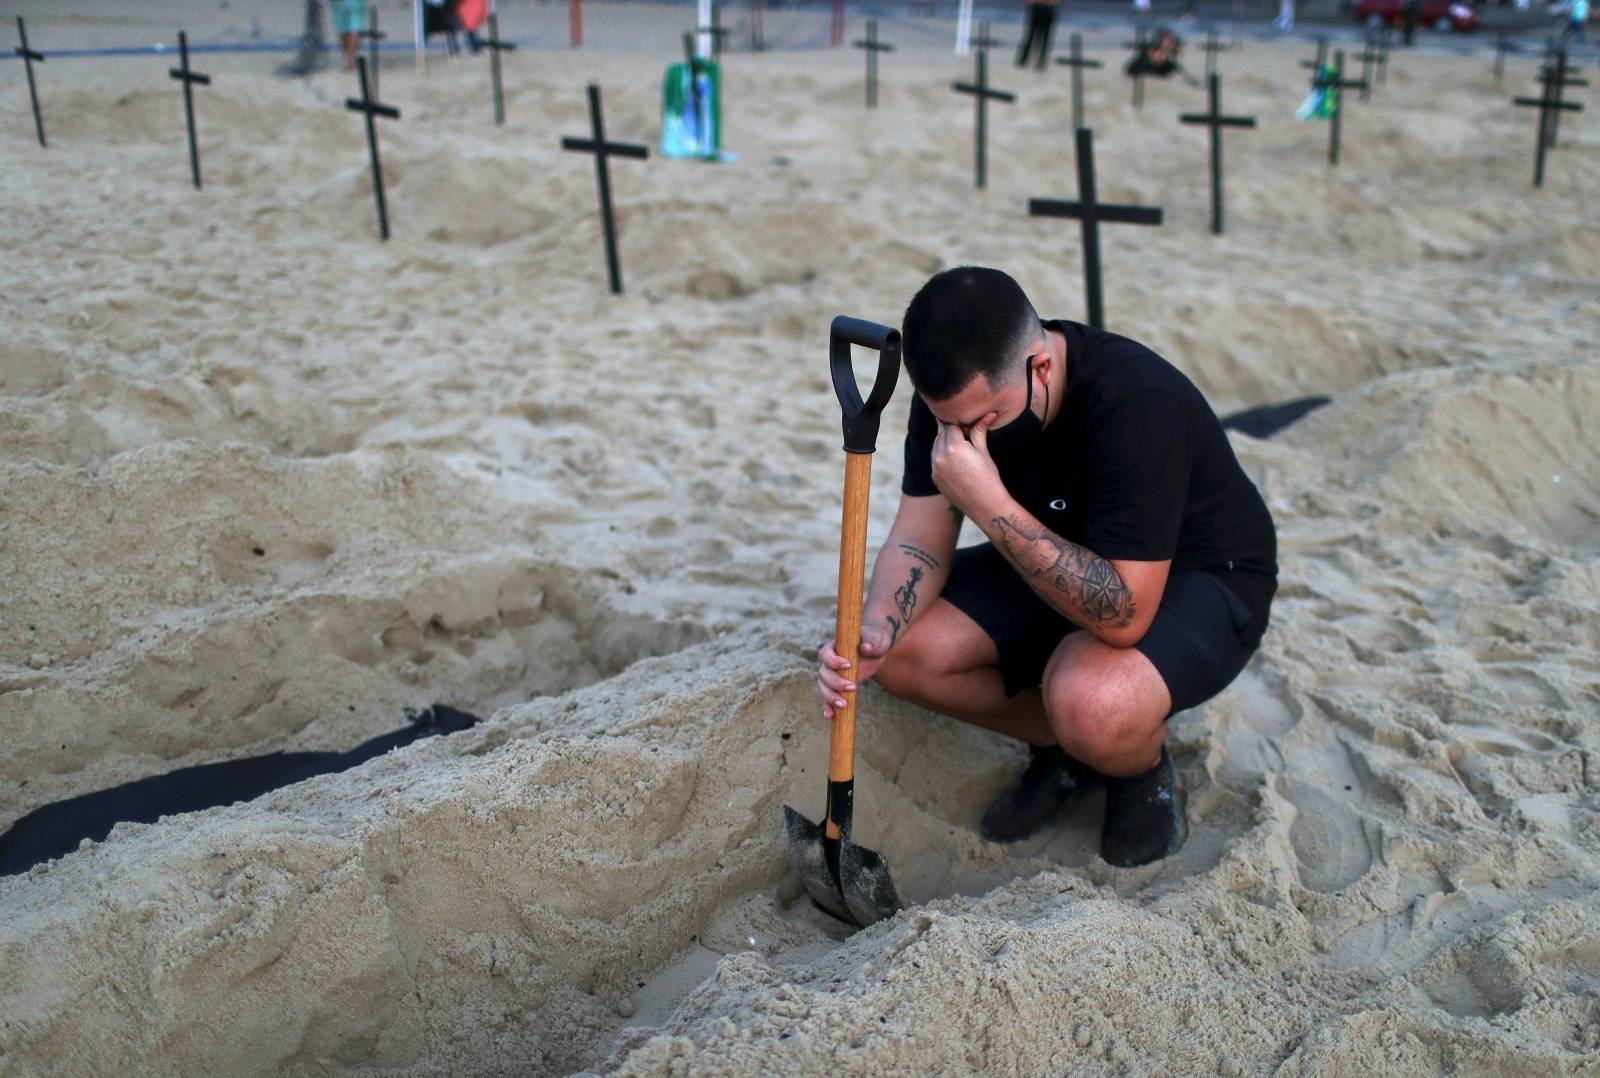 An activist of the NGO Rio de Paz wearing a protective mask reacts as he attends a demonstration during which one hundred graves were dug on Copacabana beach symbolising the dead from the coronavirus disease (COVID-19), in Rio de Janeiro